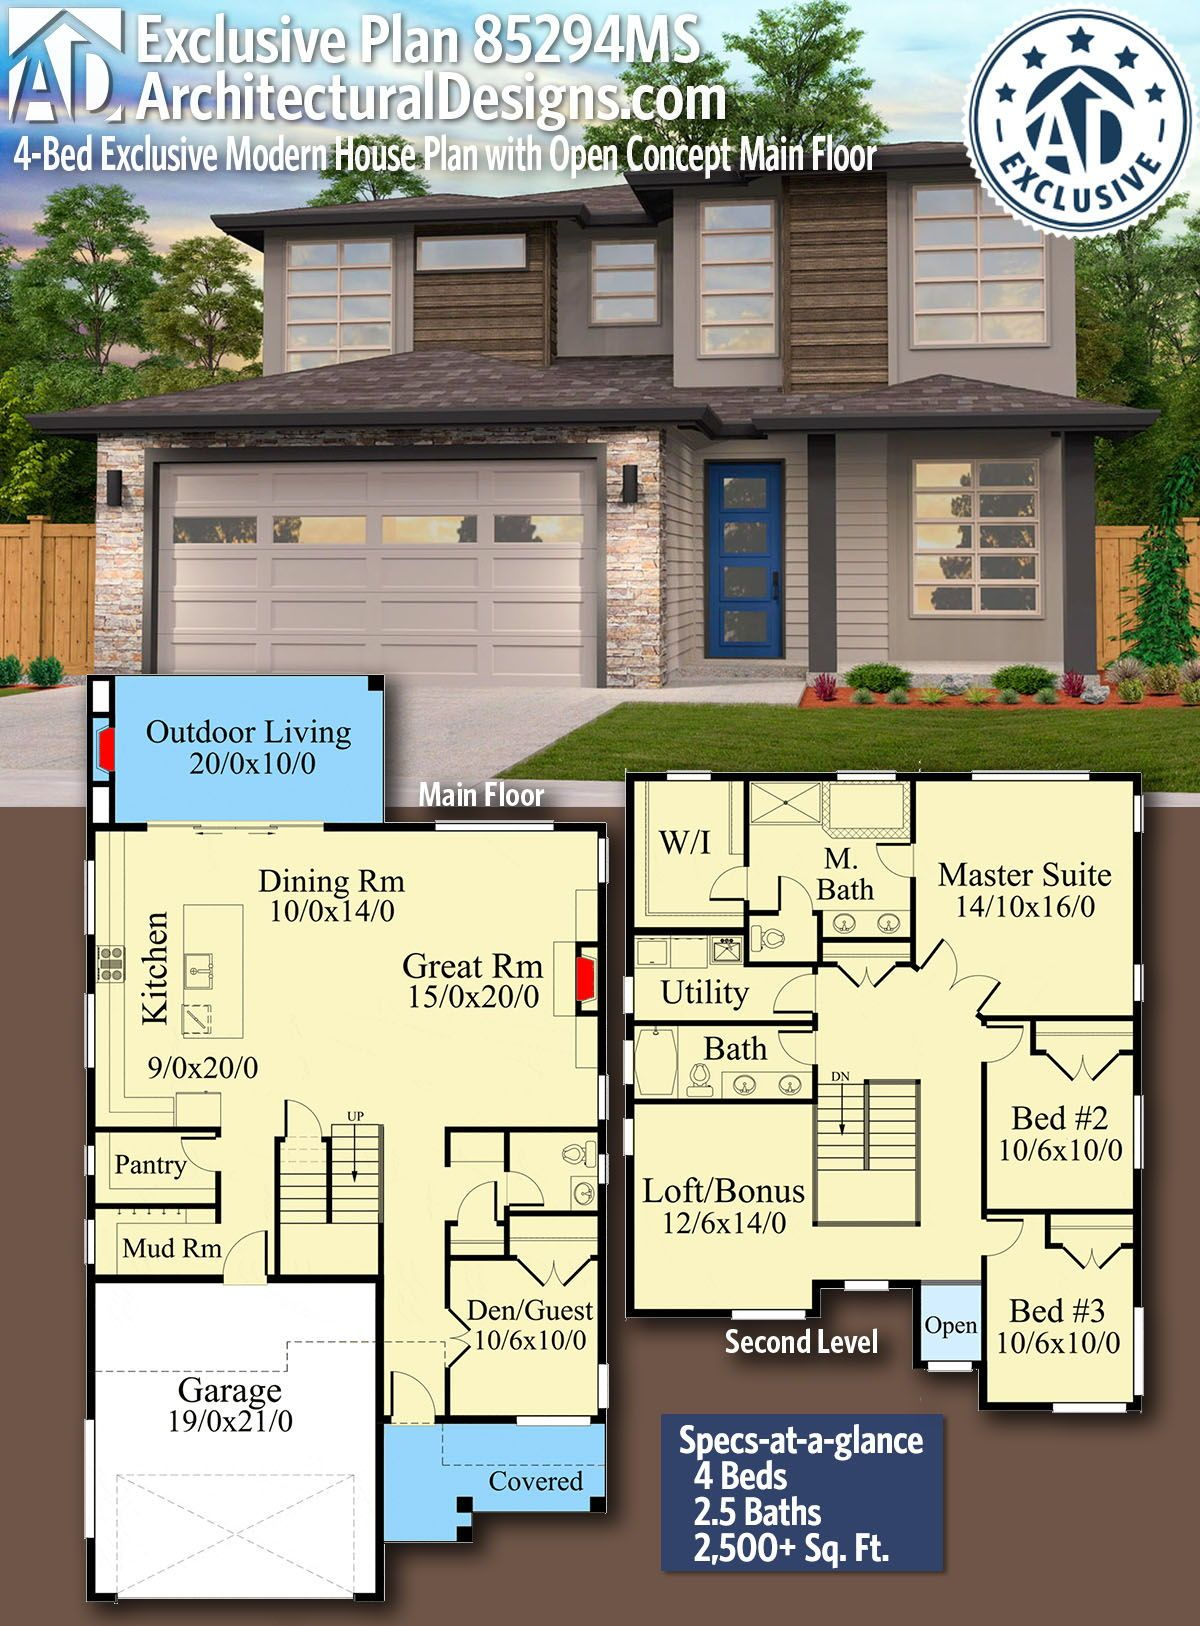 Plan 85294ms 4 Bed Exclusive Modern House Plan With Open Concept Main Floor In 2021 House Plans Modern House Plan Modern House